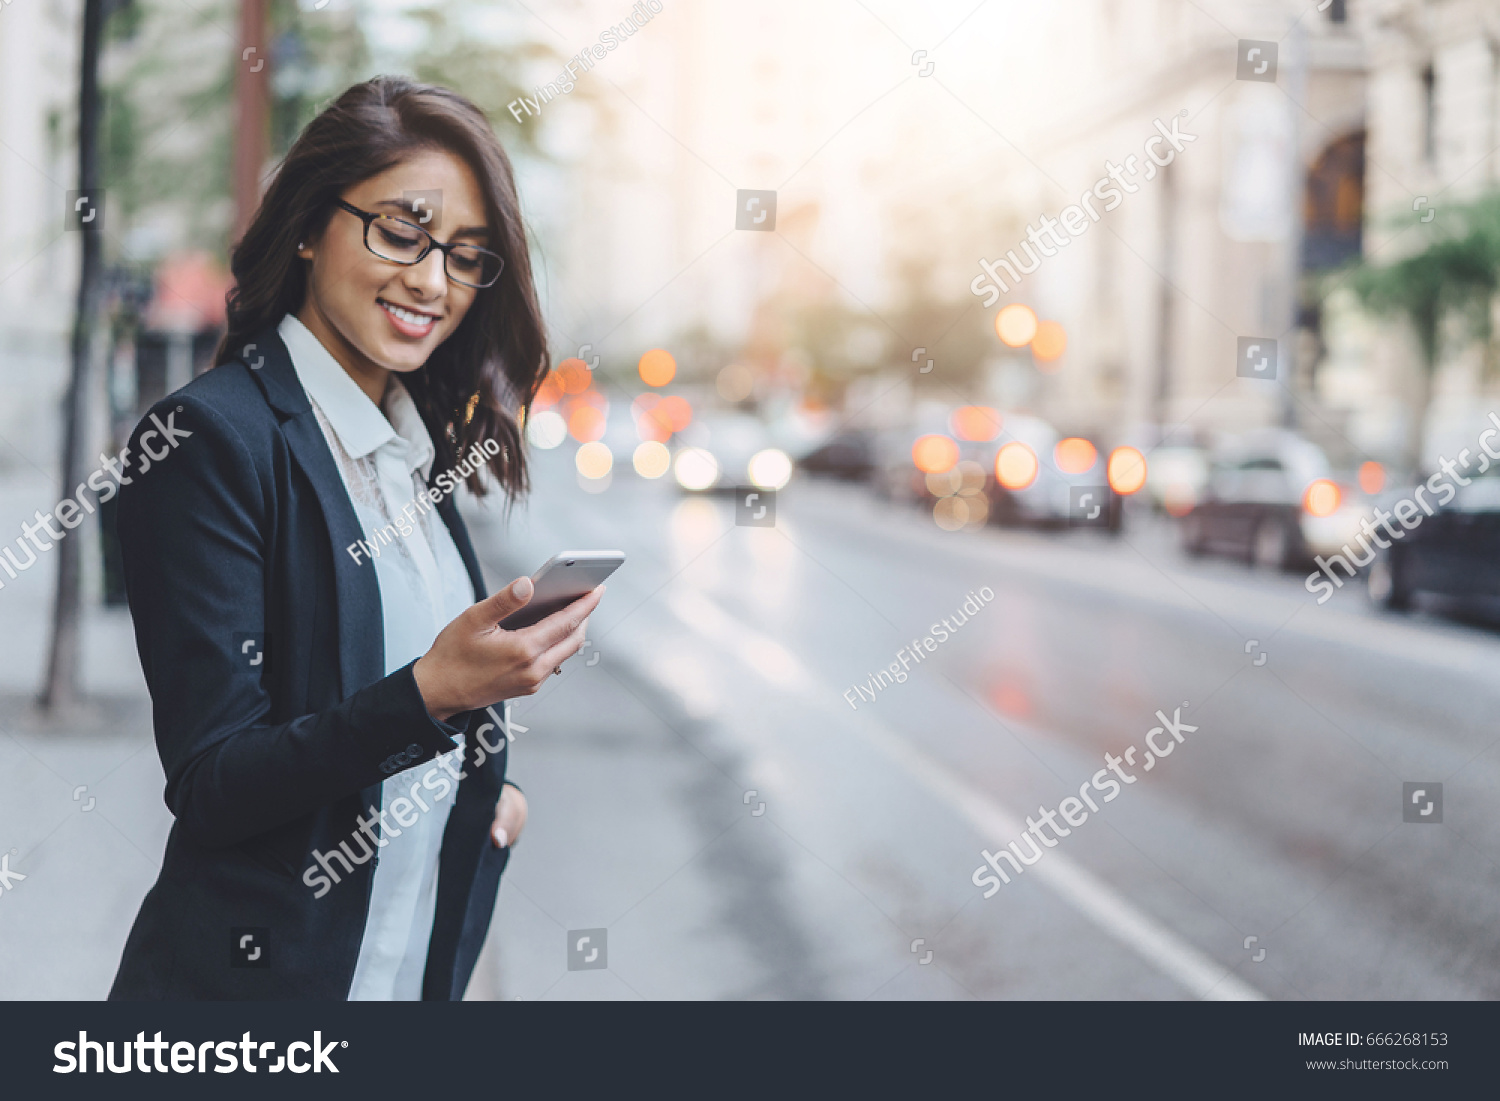 Professional business woman using technology outside to the crossroads #666268153